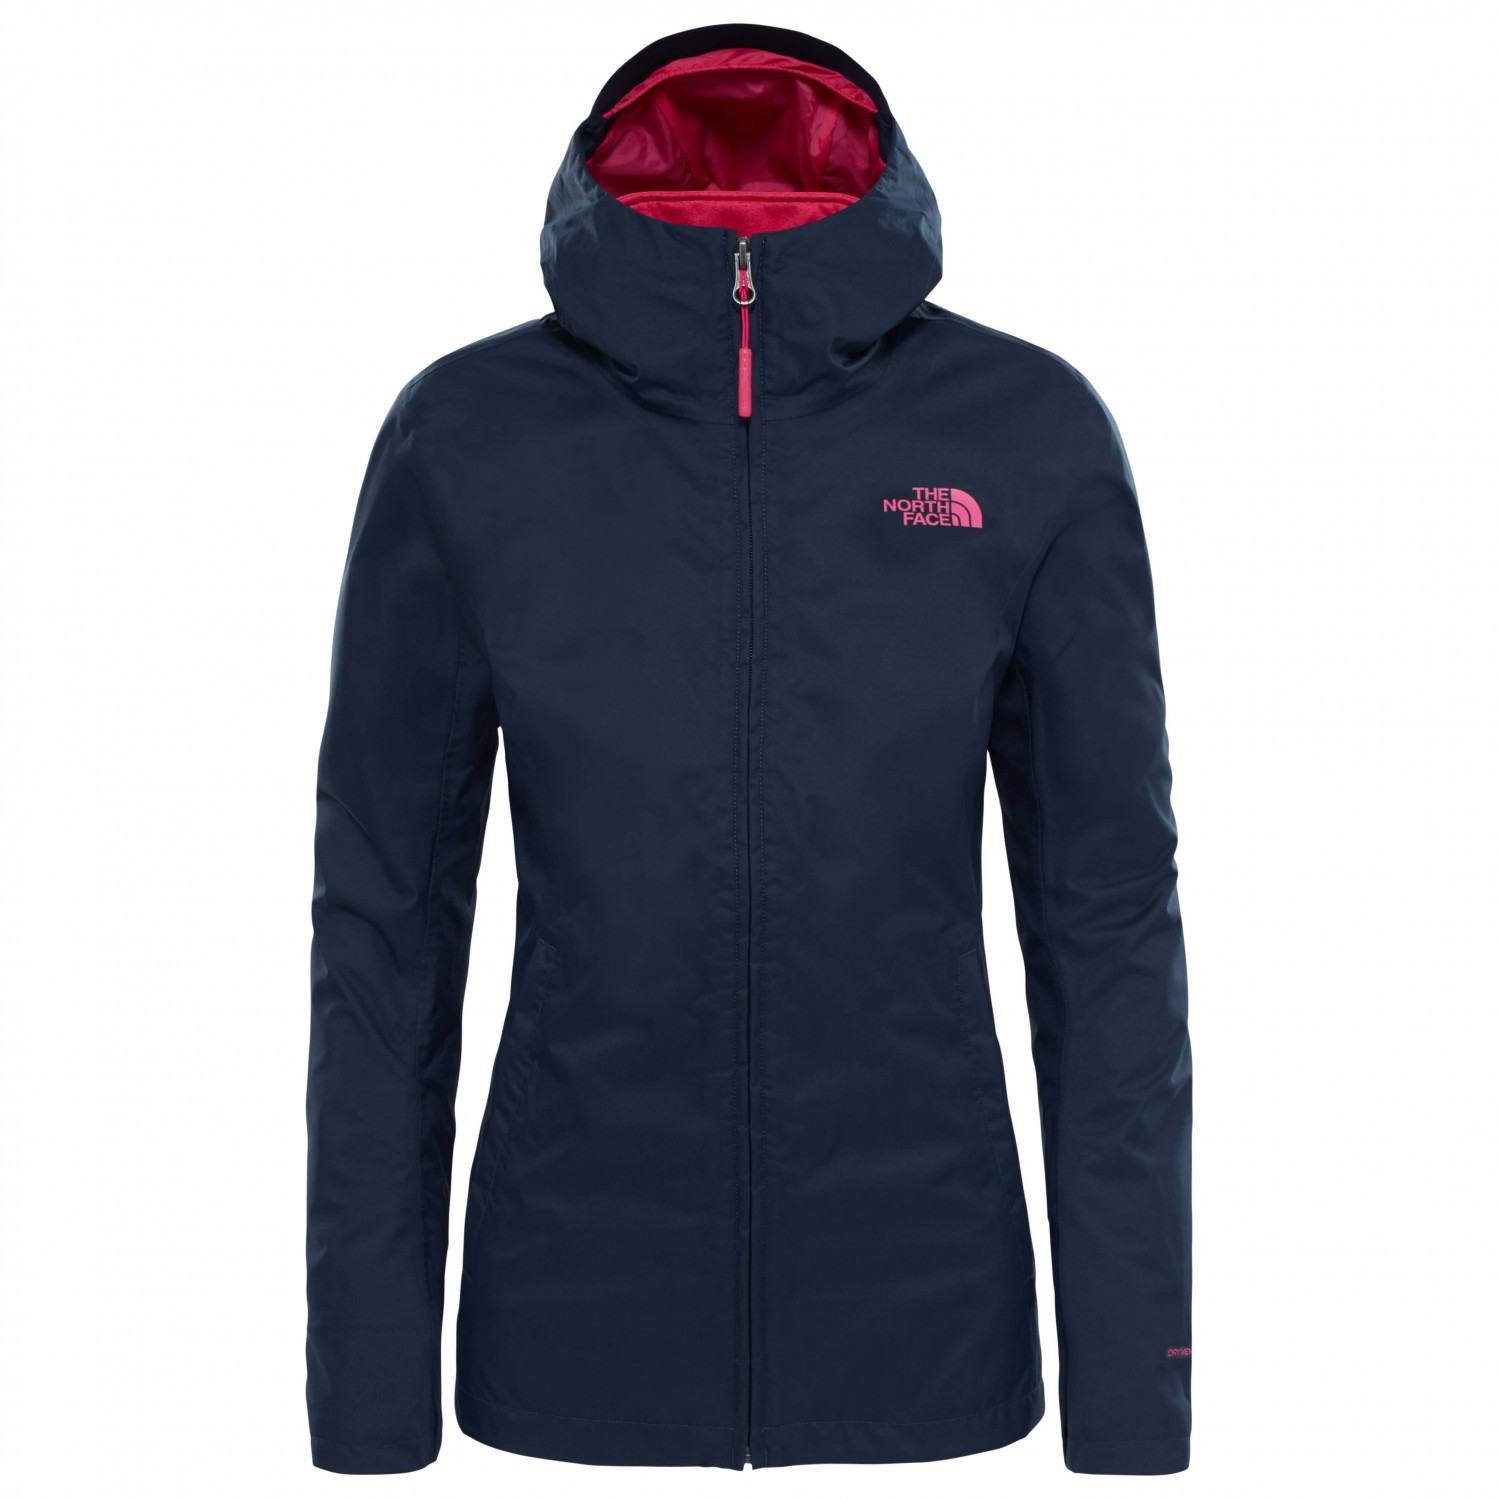 Trek Bike Size Chart >> The North Face Tanken Triclimate Jacket Women's | Free UK Delivery | Alpinetrek.co.uk